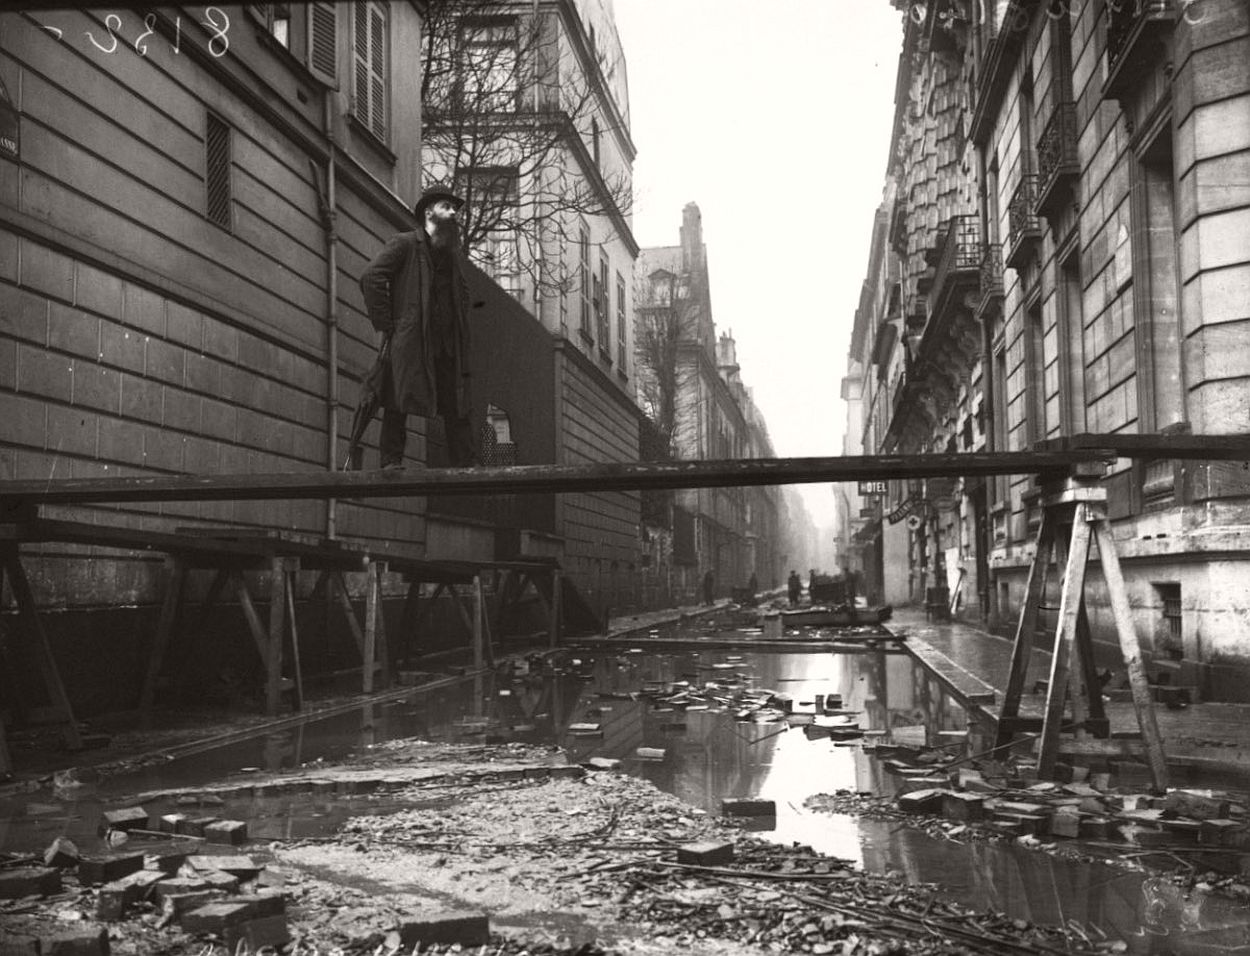 paris-underwater-great-flood-1910-11